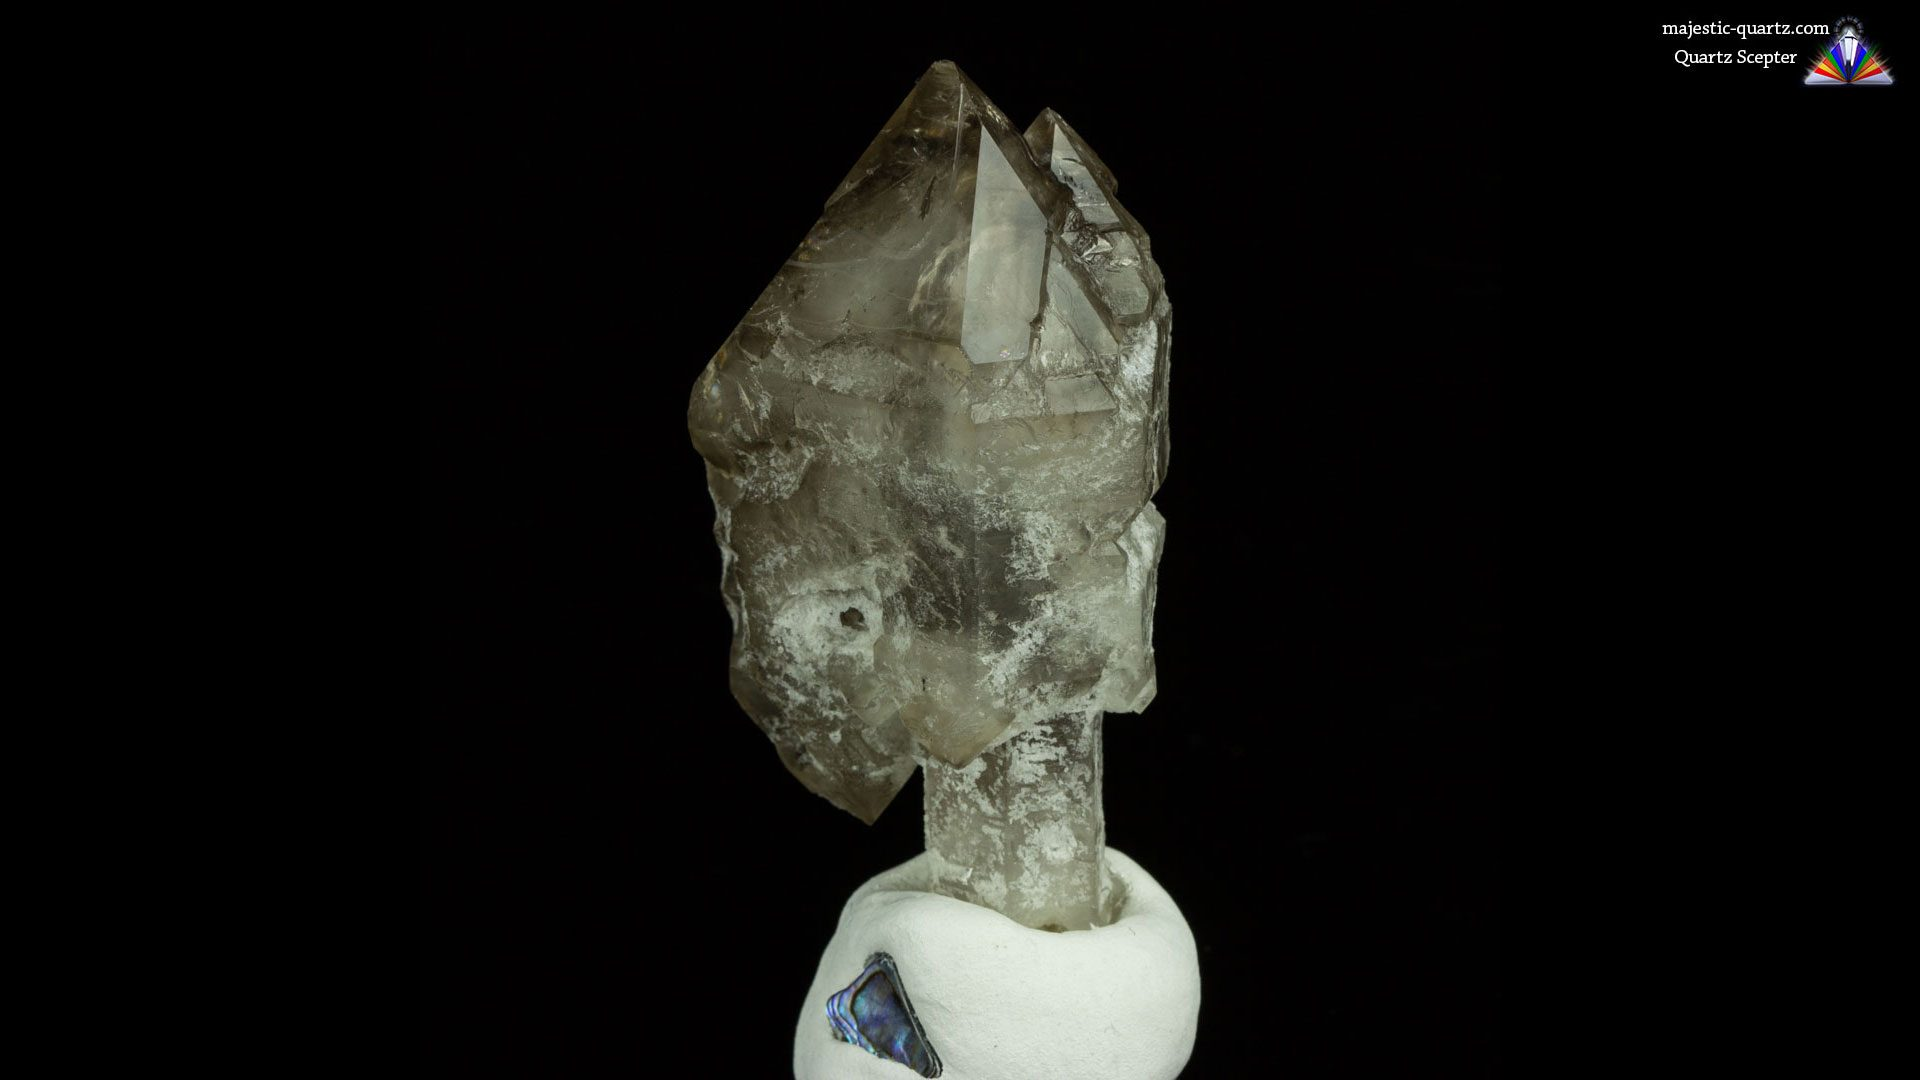 Scepter Quartz Properties and Meaning - Photograph by Anthony Bradford